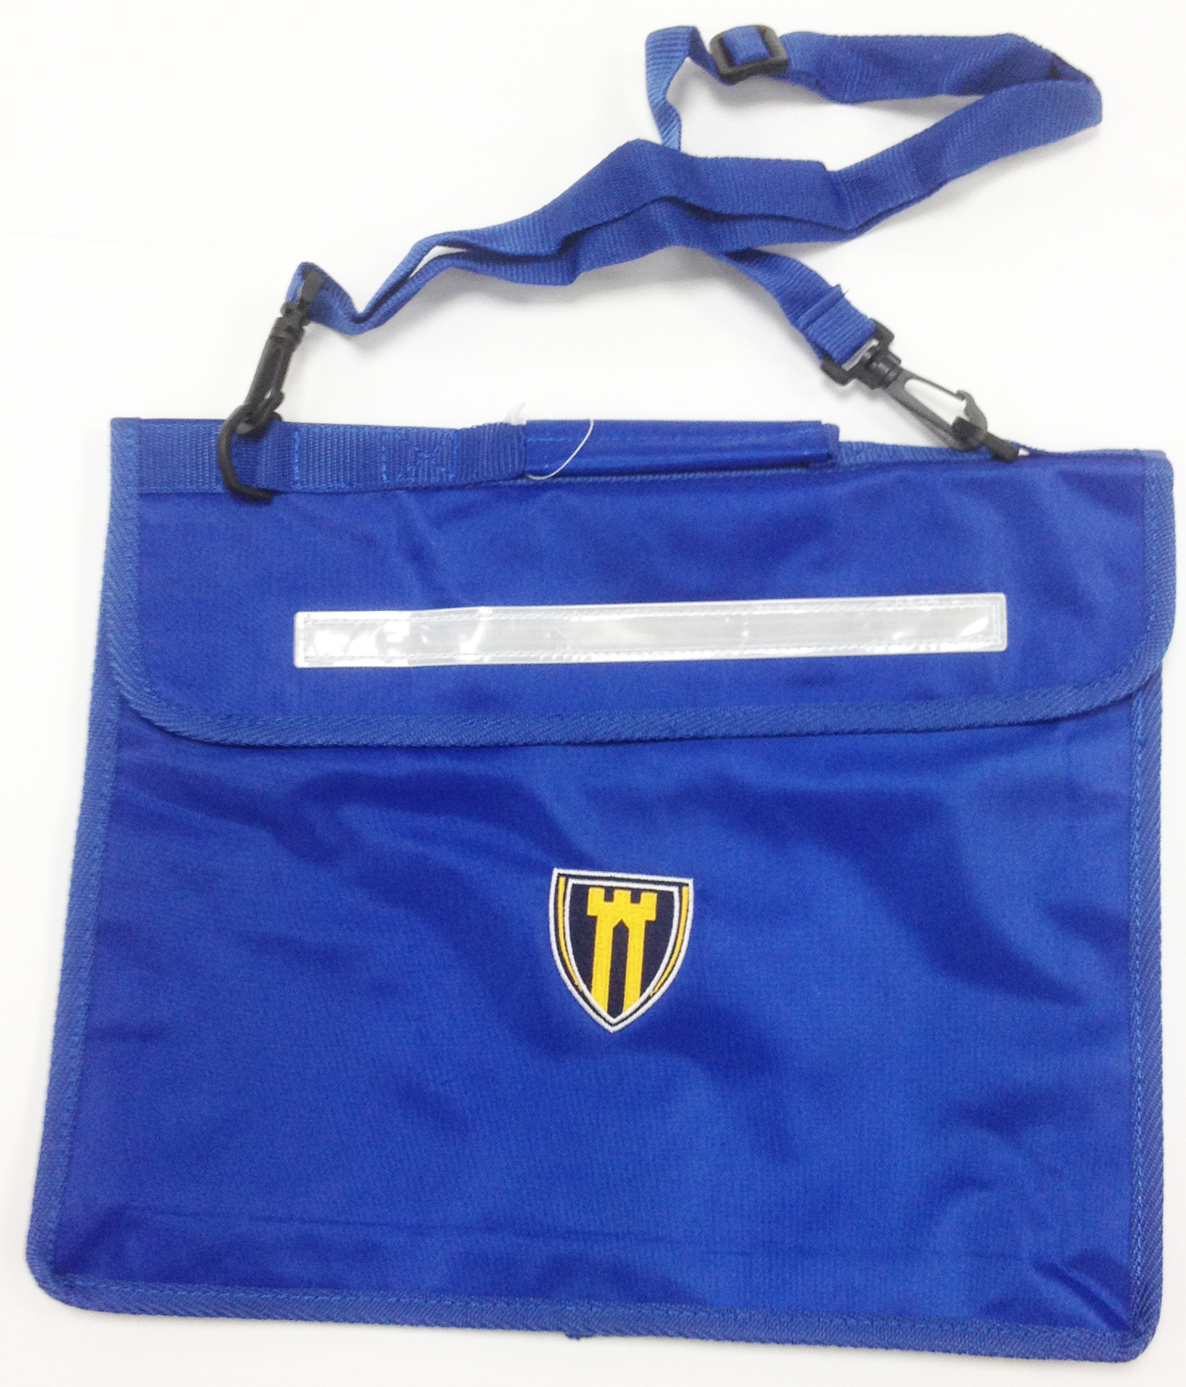 Castle Newnham Primary Book Bag (Royal)